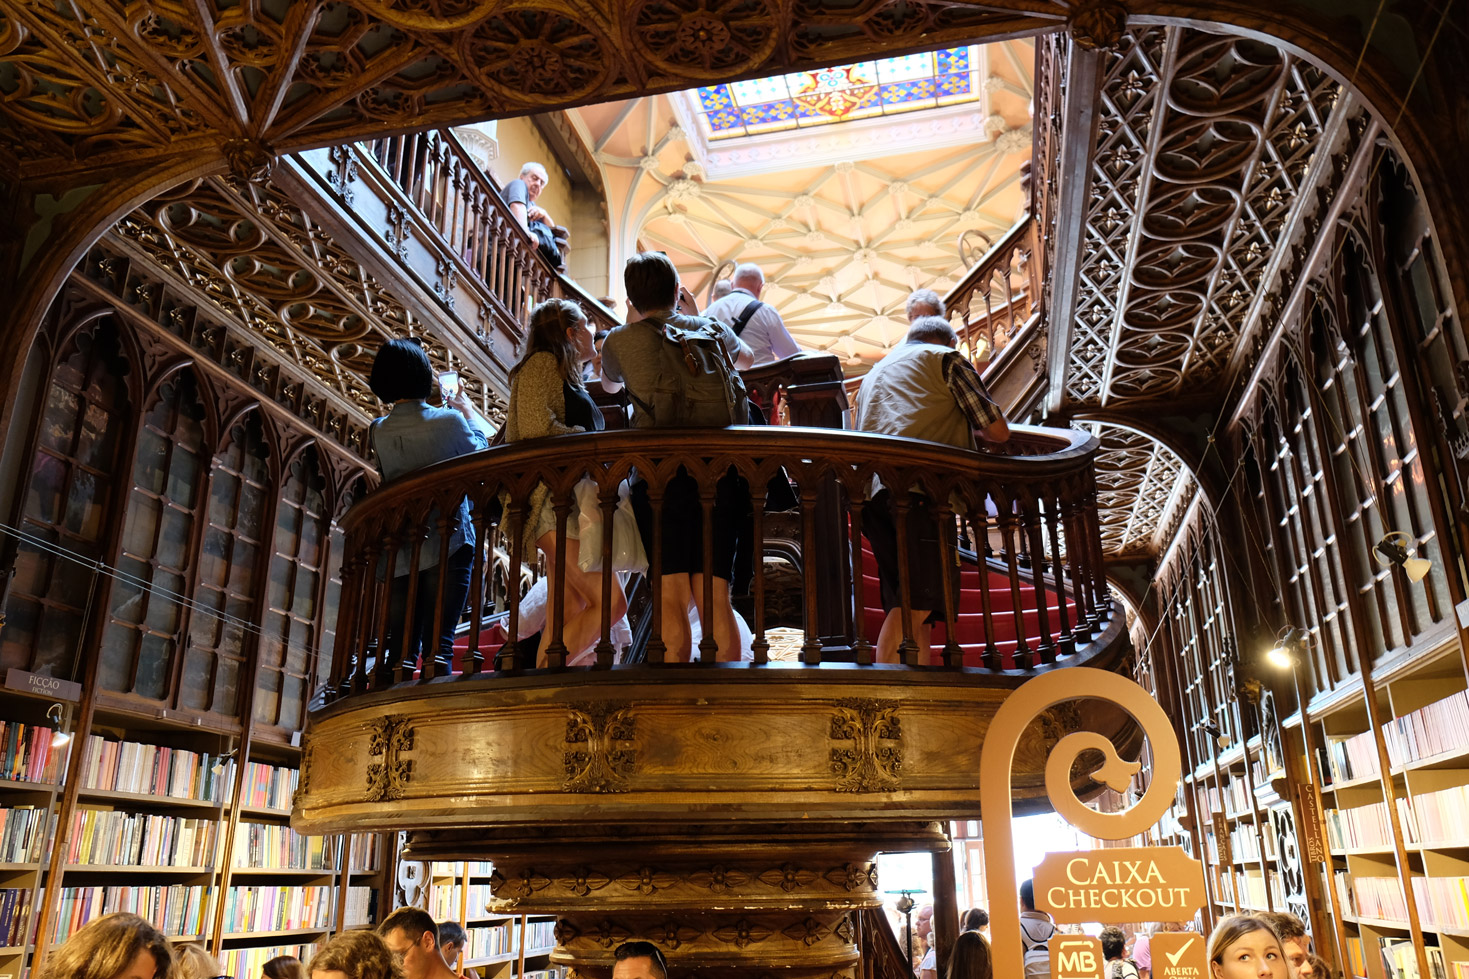 Very busy but a must-see if you're in Porto